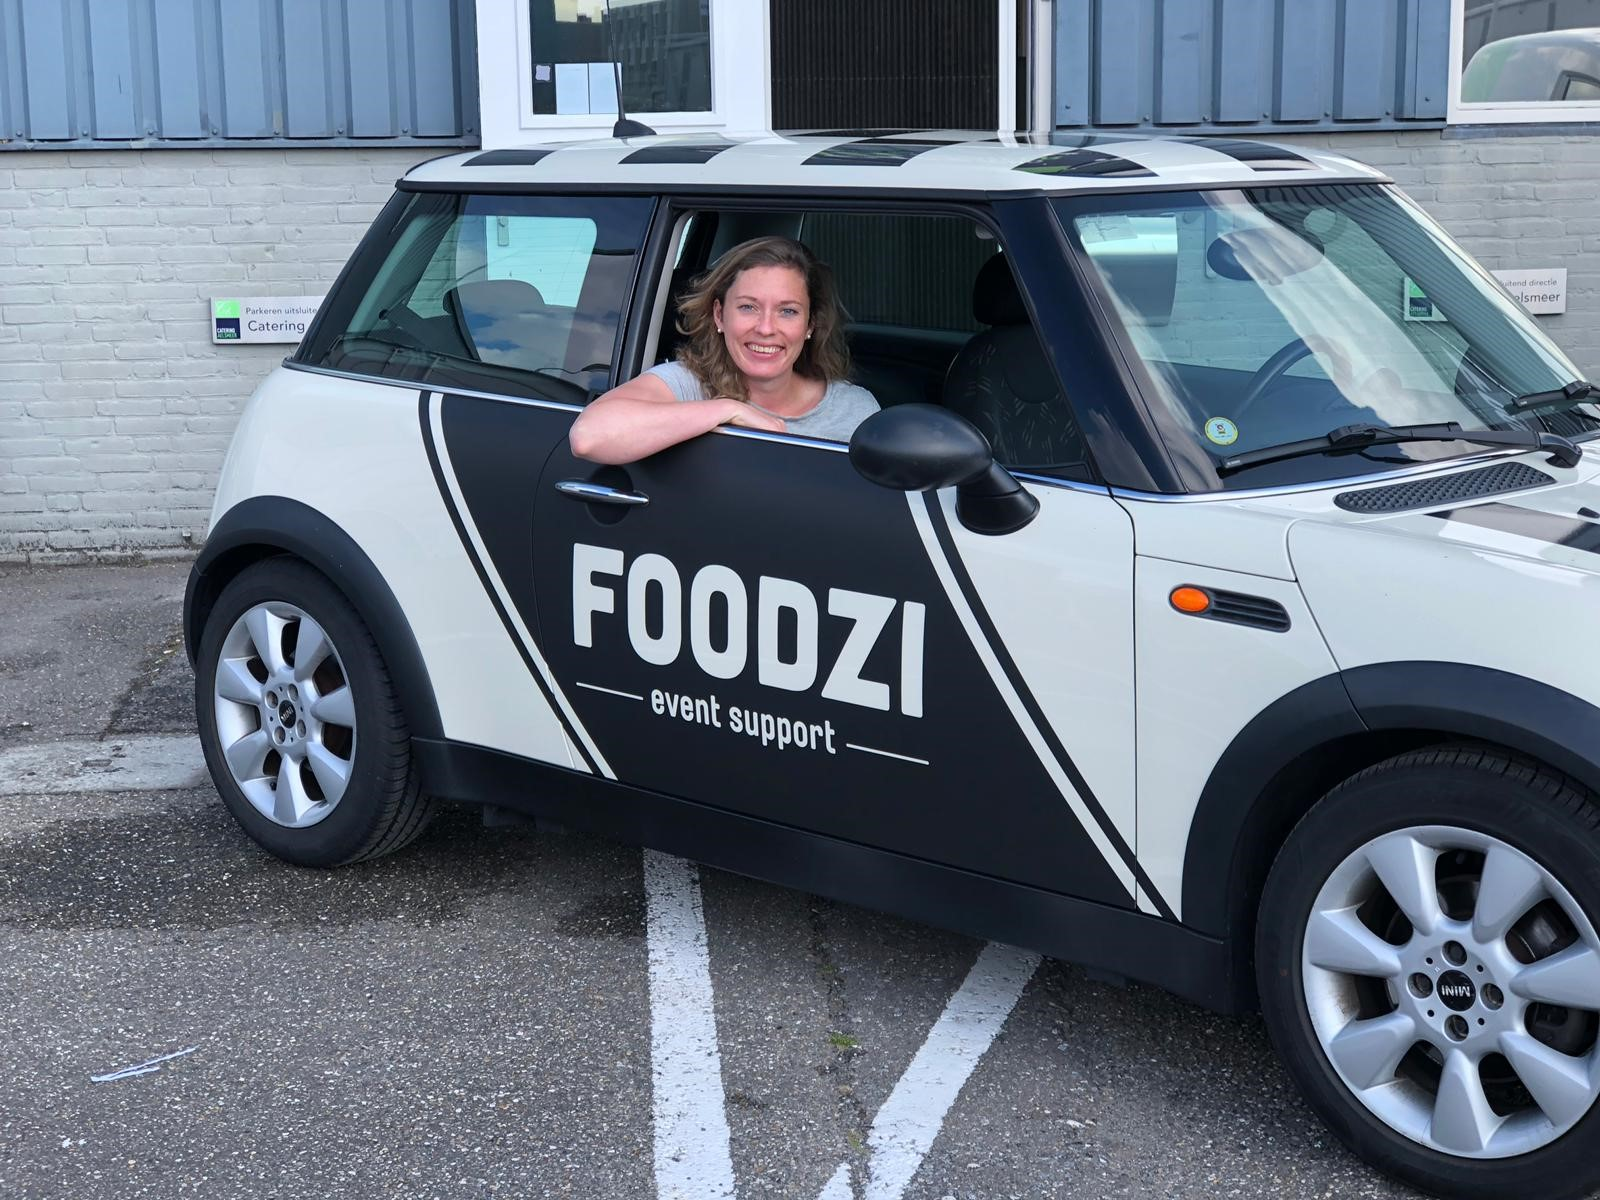 Foodzi Event Support Mini